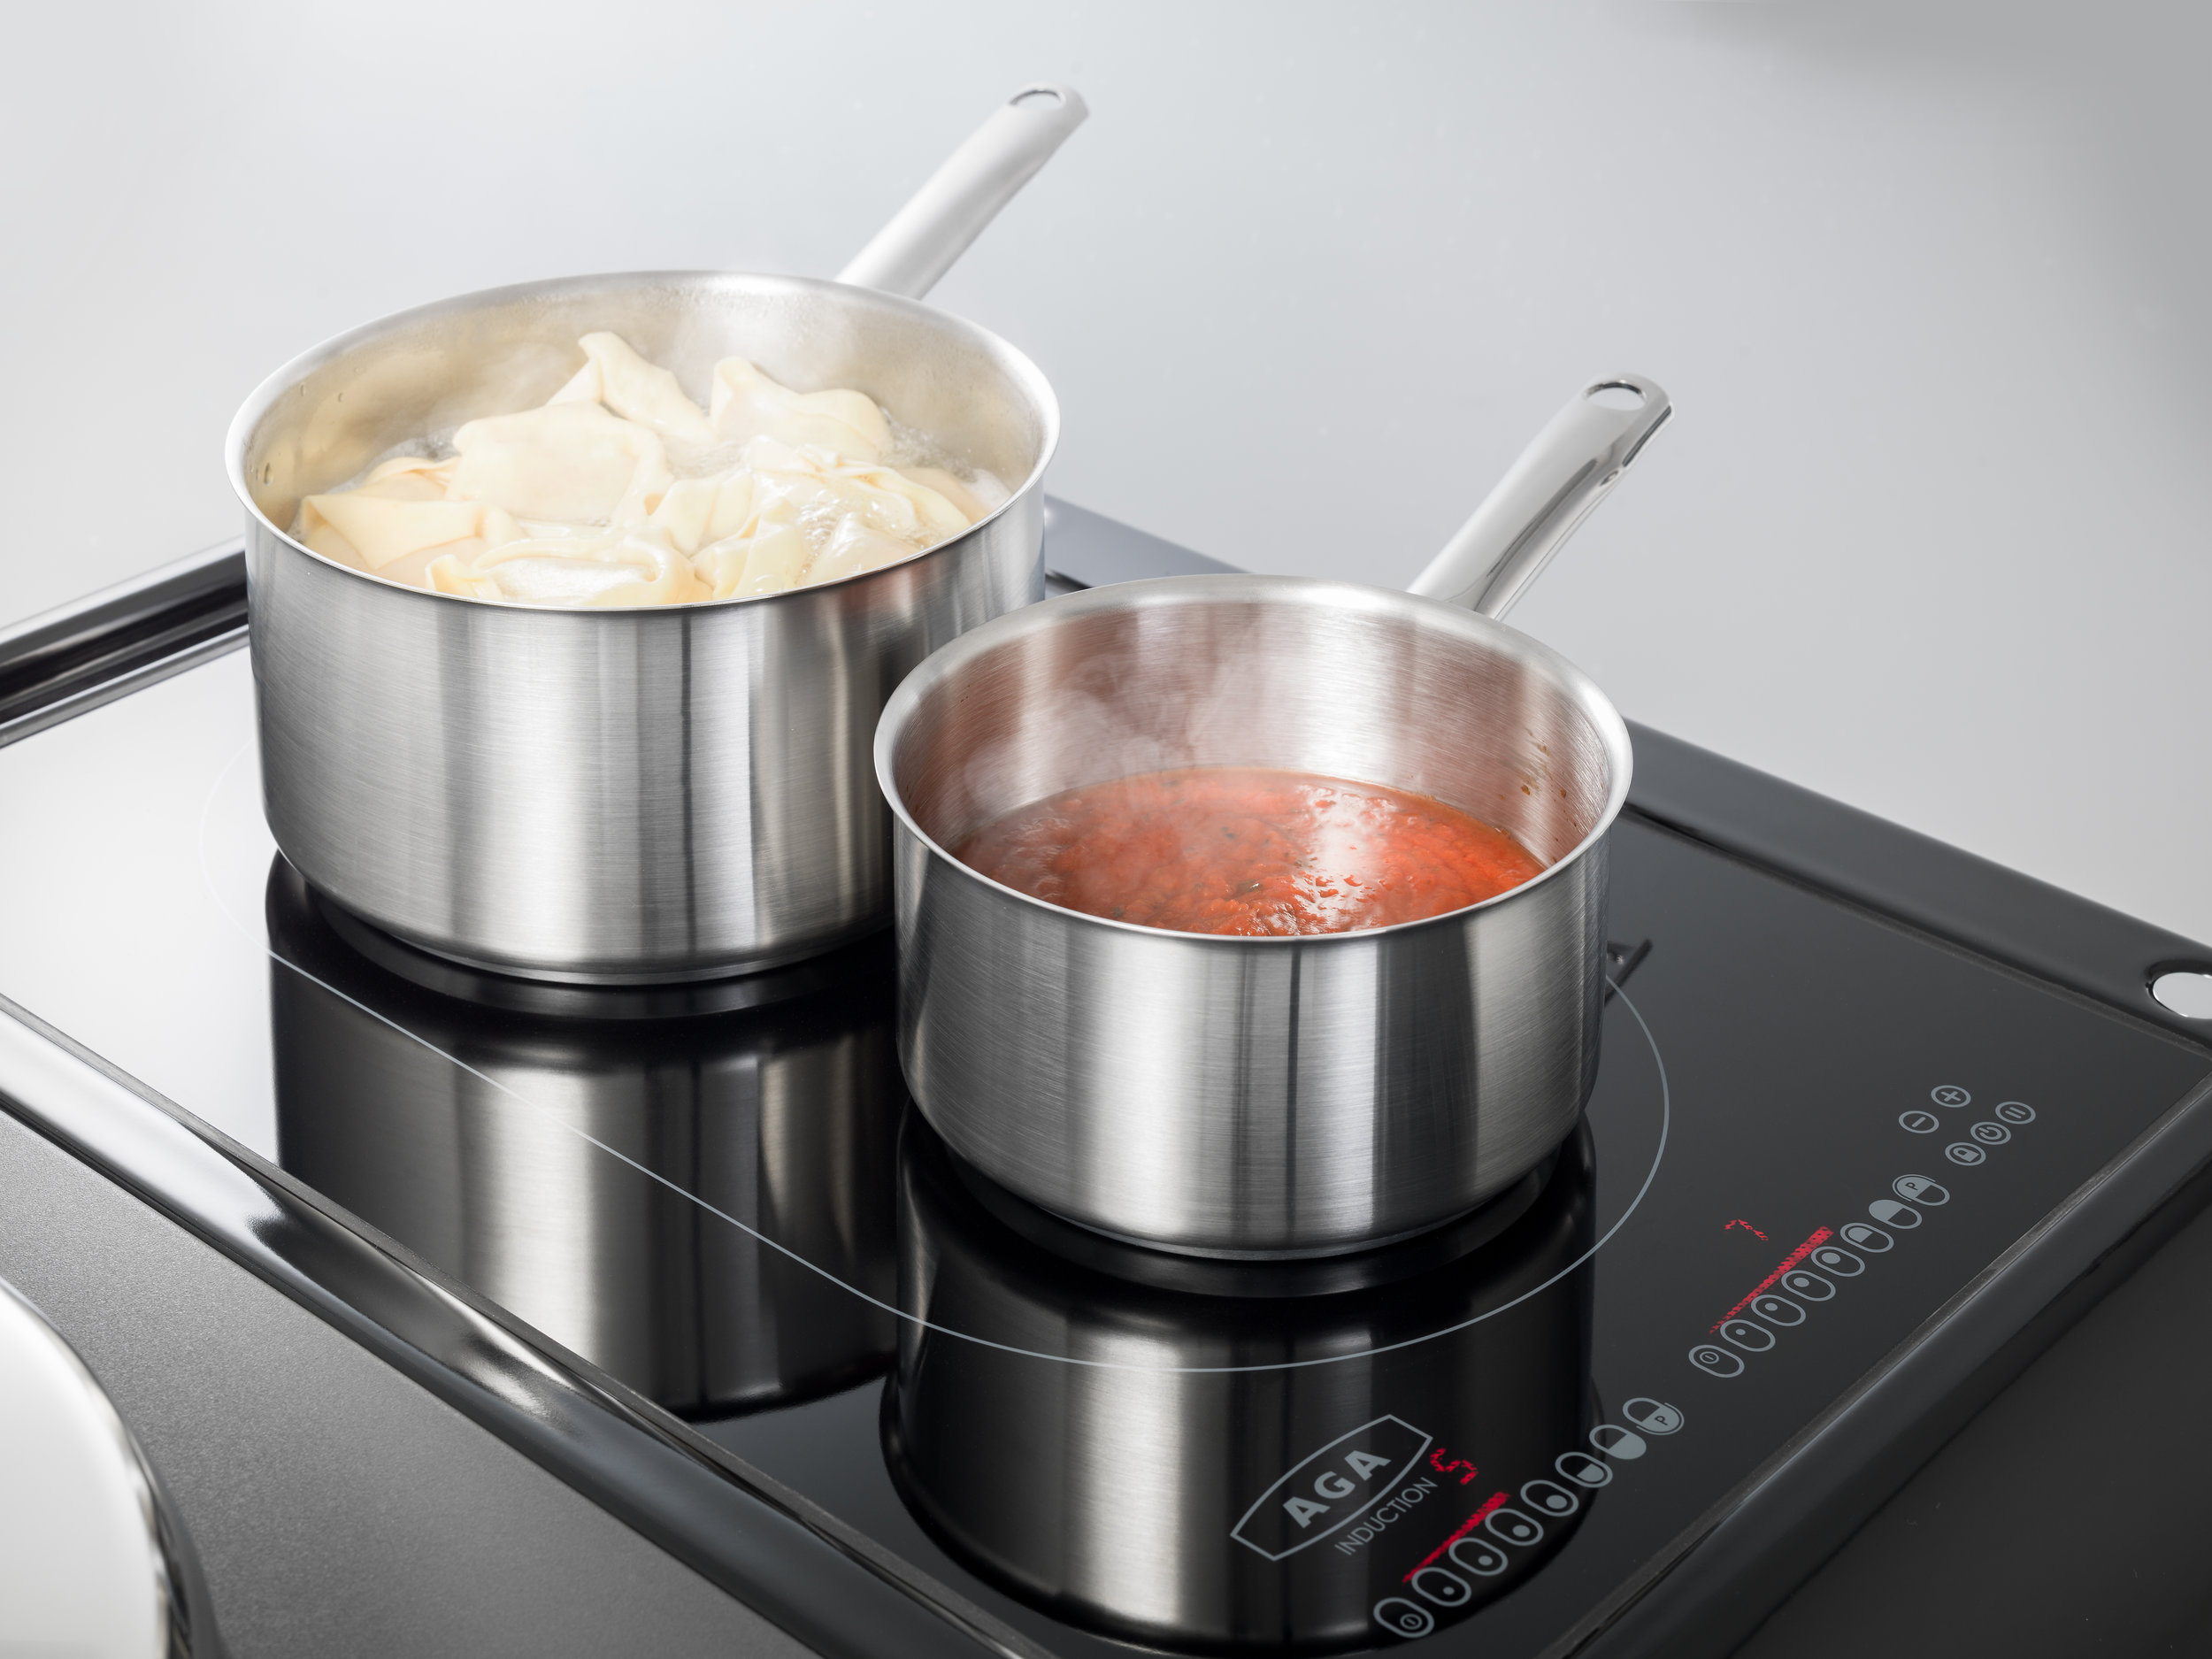 Induction Hotplate - This new AGA induction hotplate features a two-zone large pan area suitable for two pans, or an induction suitable with a griddle plate, fish kettle or other large cookware.Low temperature function include: One level for defrosting or melting (44 °C), Level for warming up and keeping warm (70 °C), Option: third warming level for simmering (94 °C)Automatic functions include: Boil detection with water, Heating up to a frying temperature,Time functions, Keep simmering or re-boil powerfully, Boil dry detection, Permanent pot detection, and aBridge/booster function.